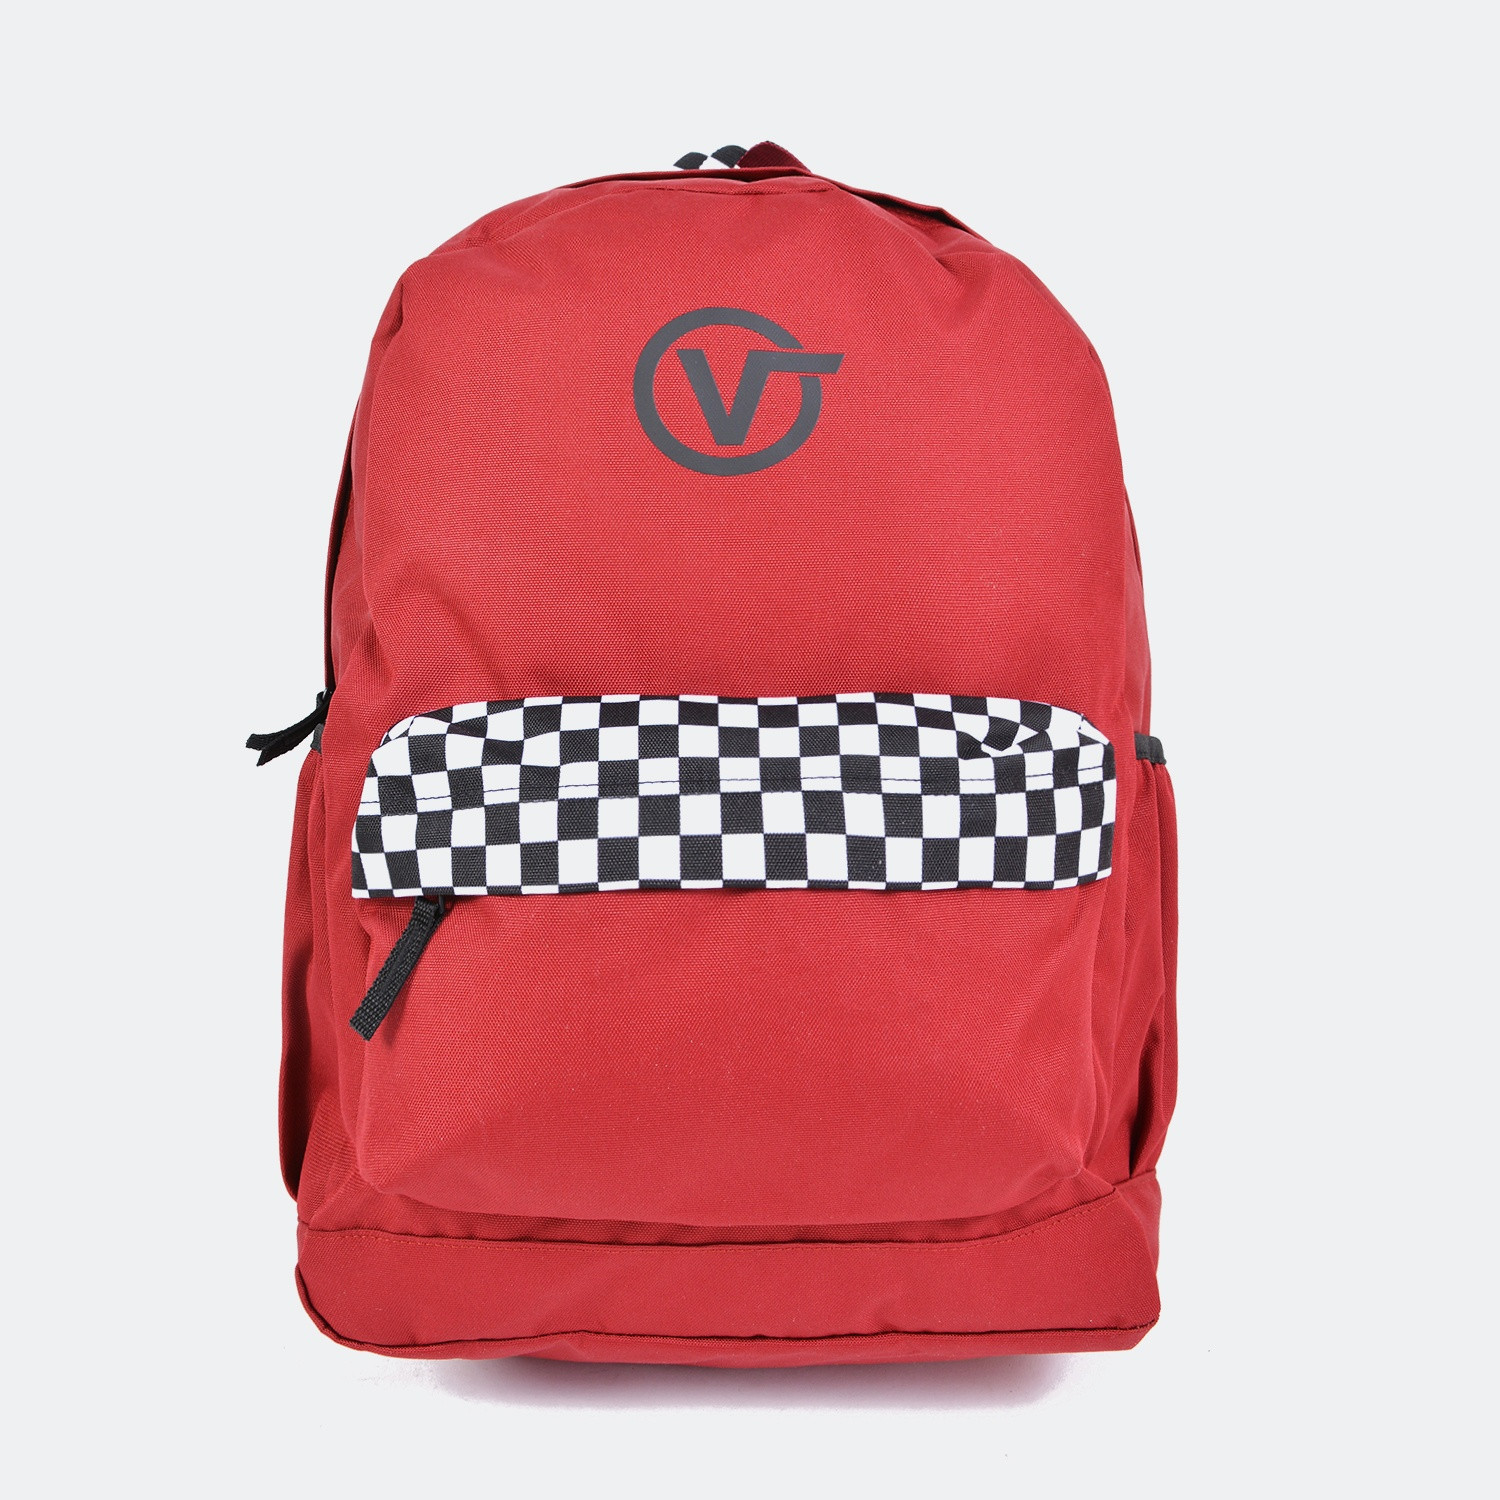 Vans Women'S Sporty Realm Plus Backpack (9000039169_1602)